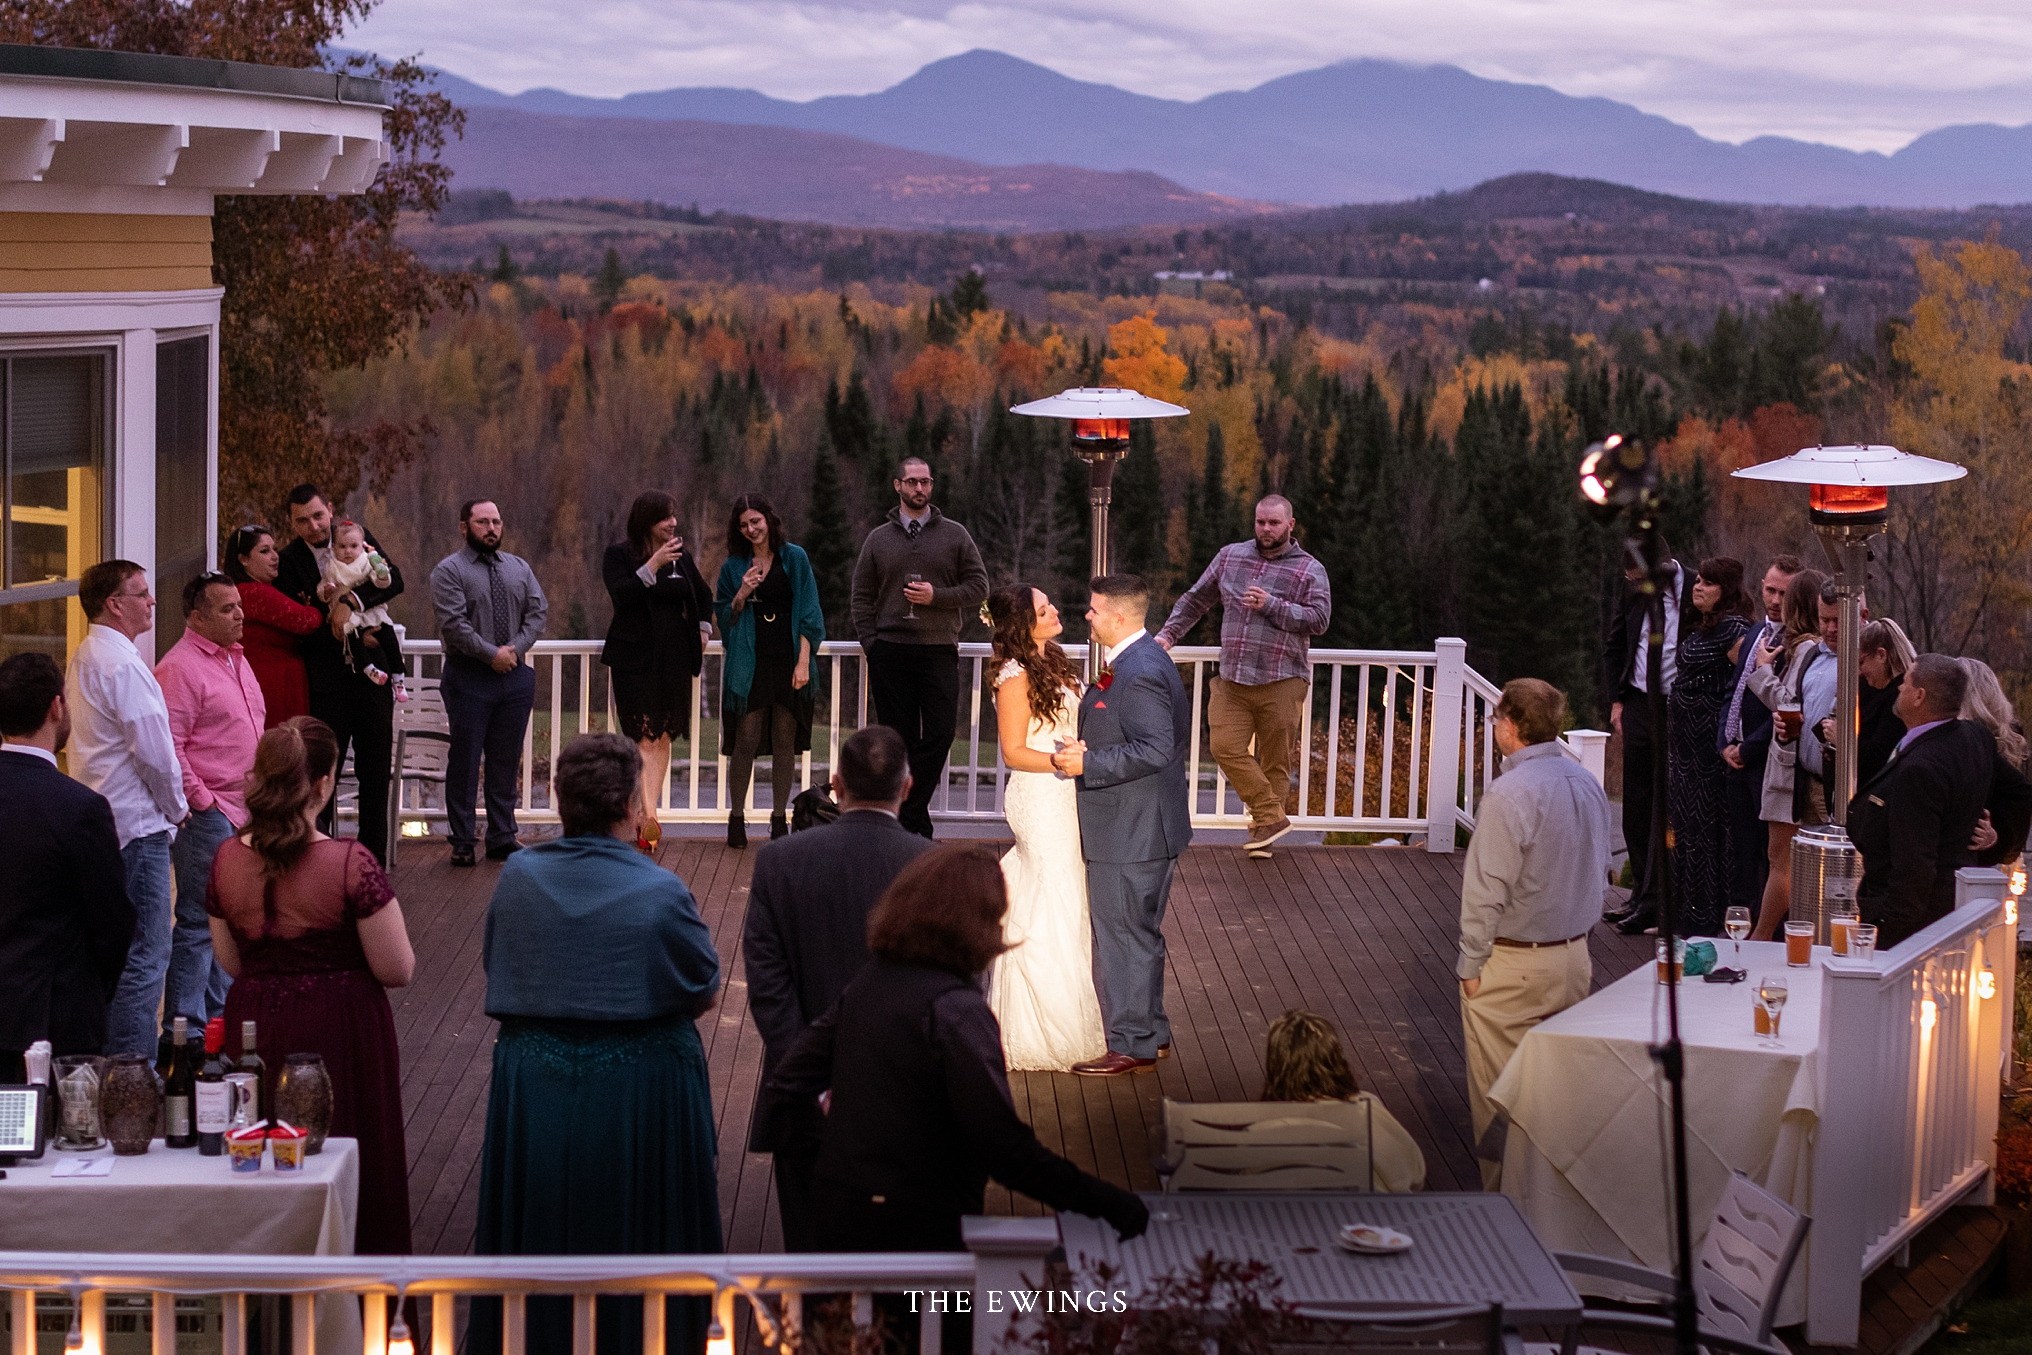 These two were married at the Mountainview Grand in the white mountains of New Hampshire, with views of Mount Washington and the Presidential Range wedding.